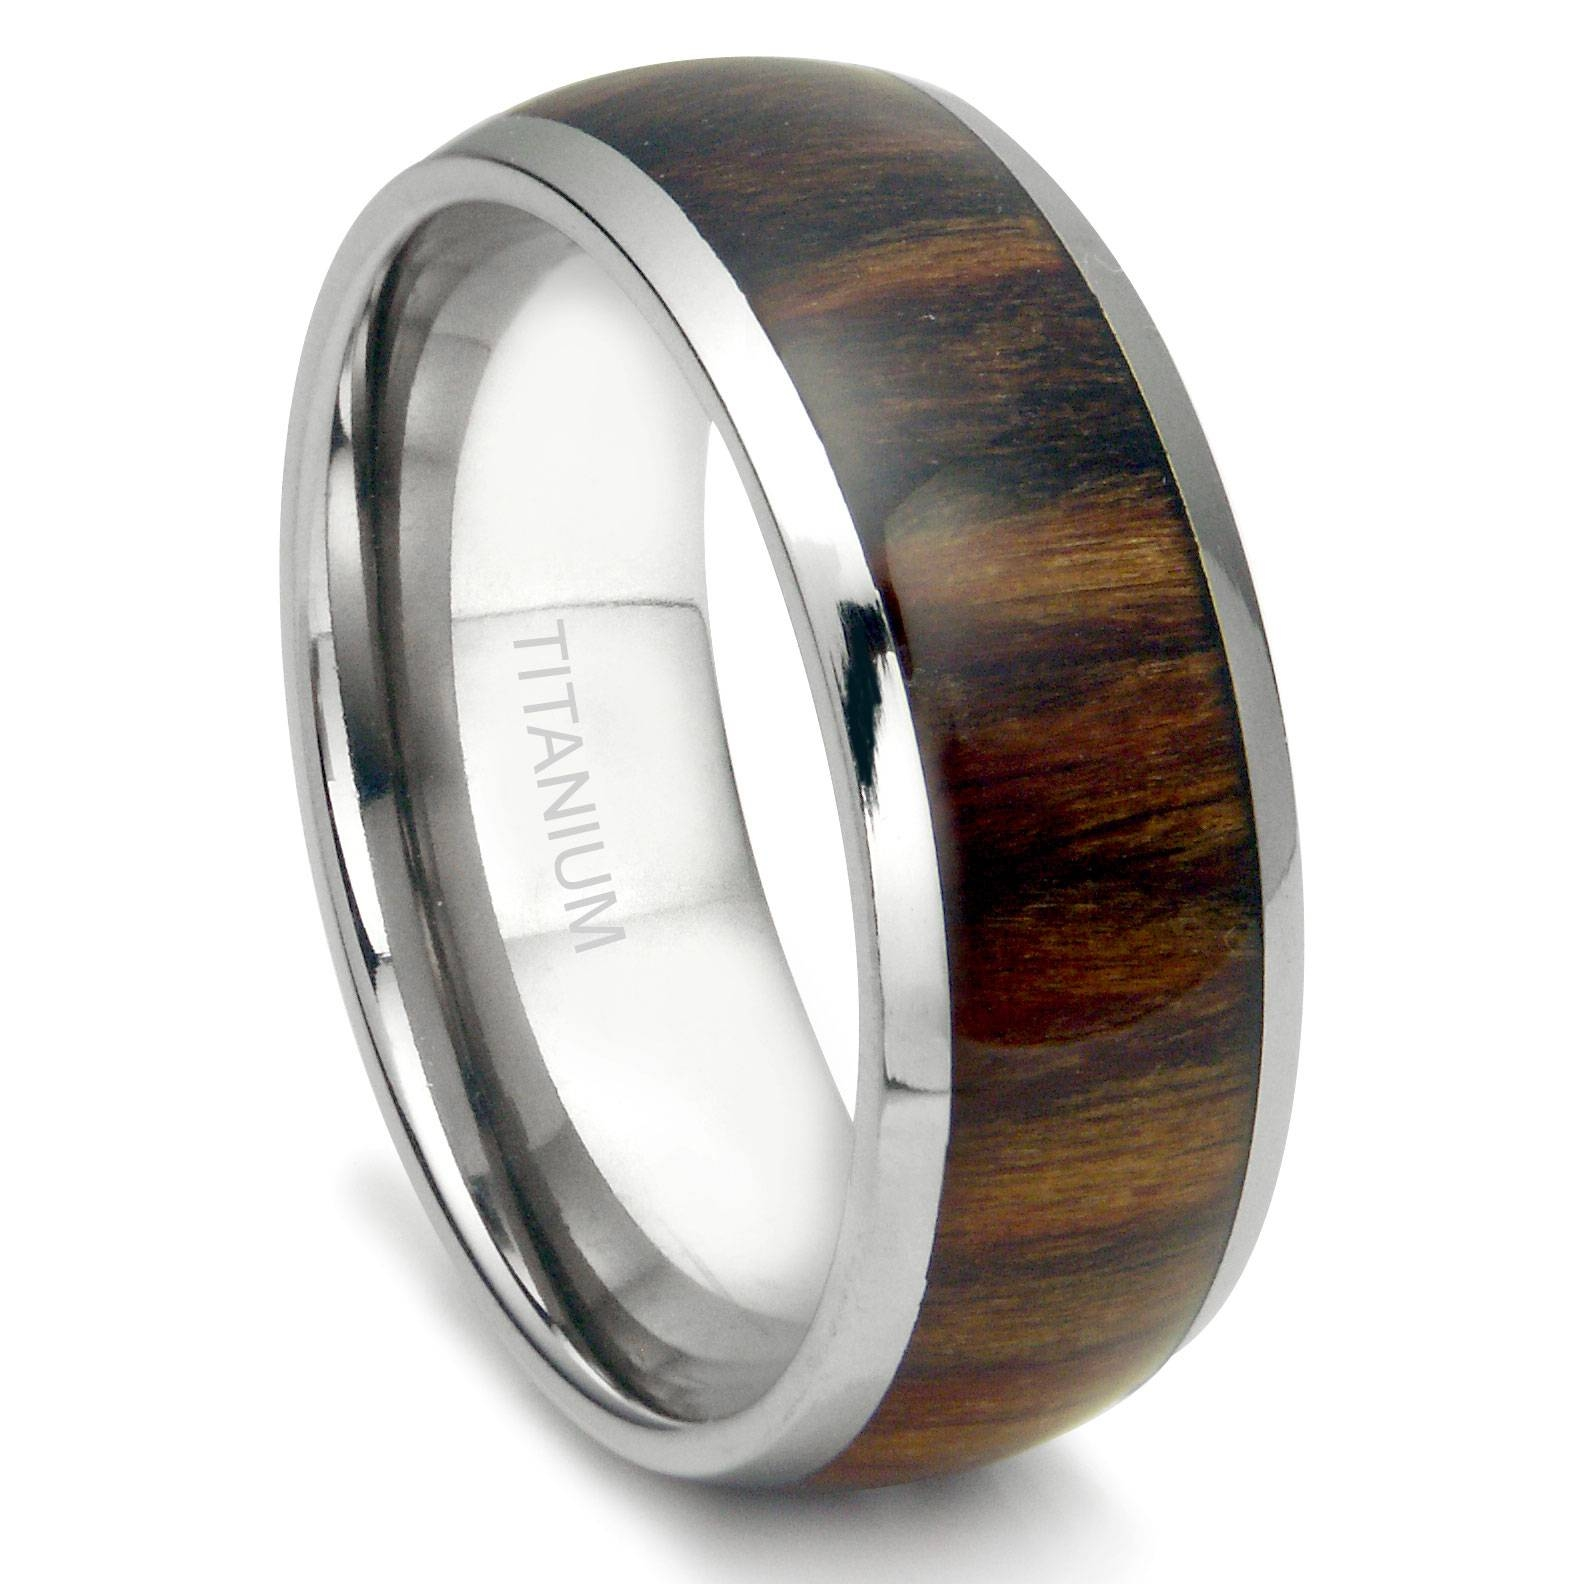 Titanium 8Mm Domed Santos Rosewood Inlay Wedding Band Ring With Regard To Titanium Wedding Bands For Men (Gallery 3 of 15)